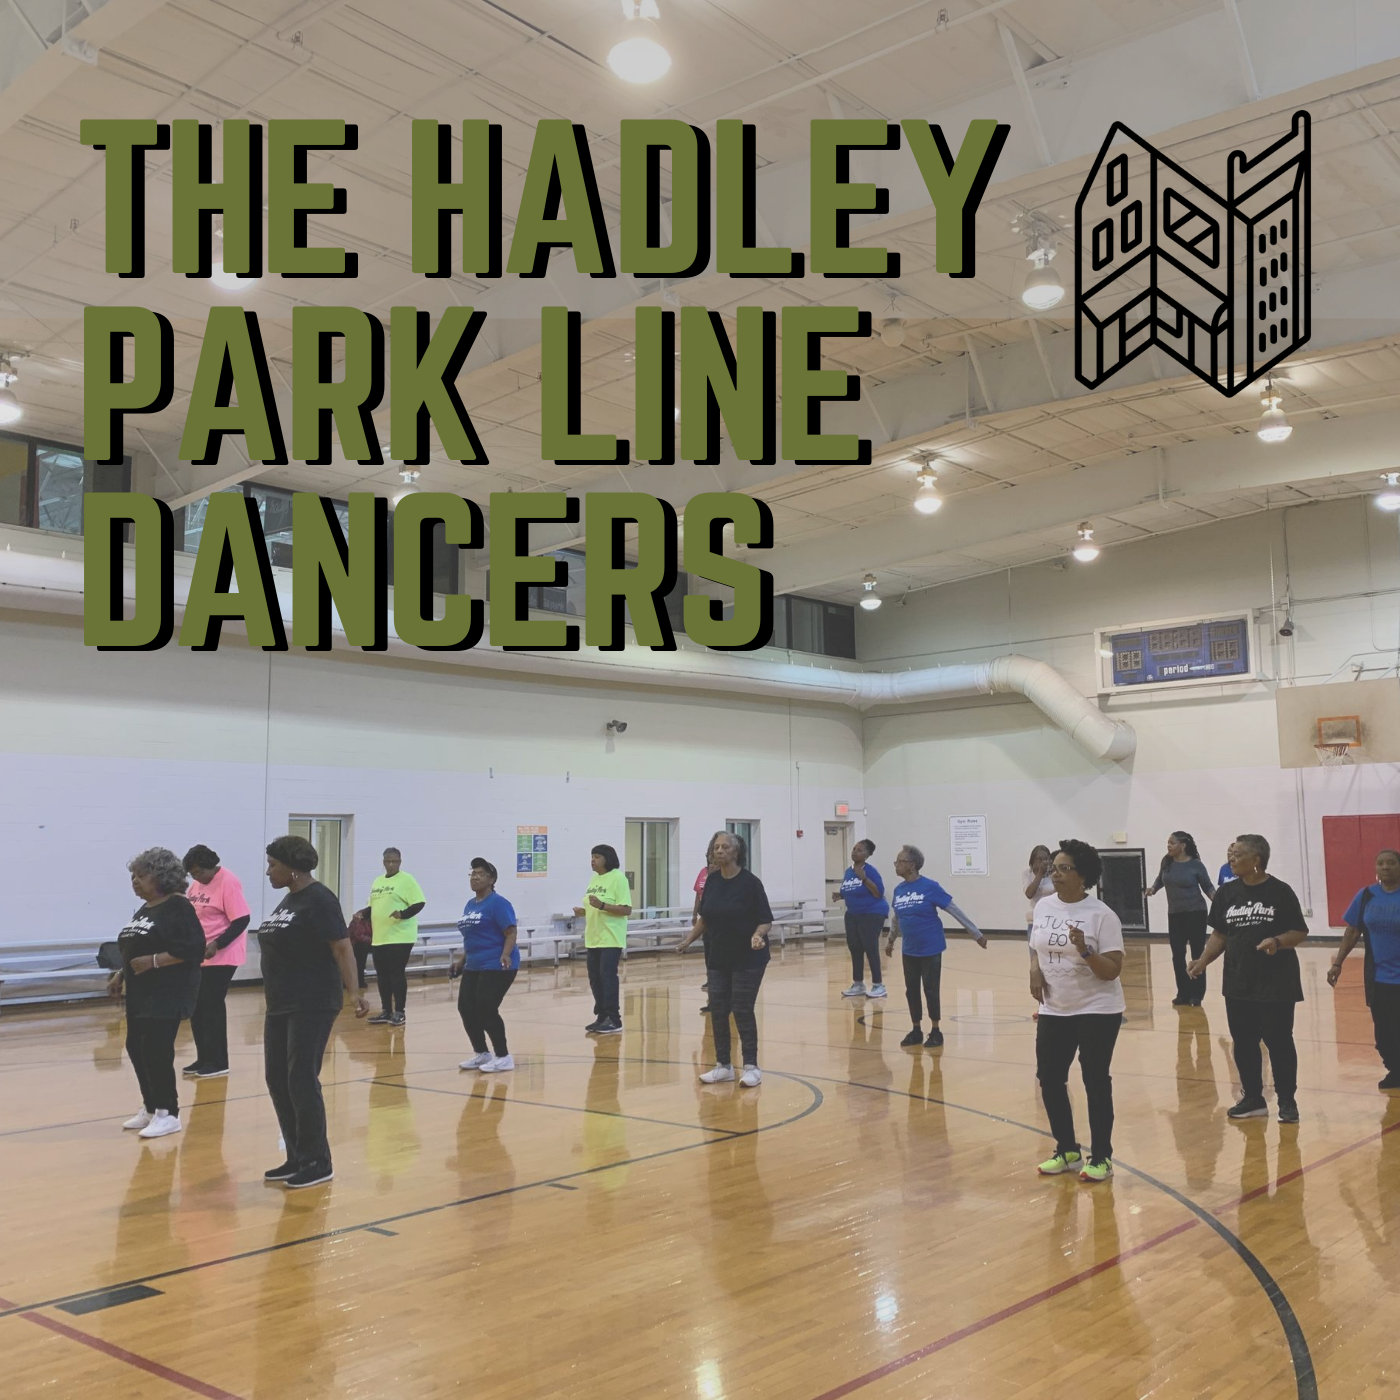 The Hadley Park Line Dancers